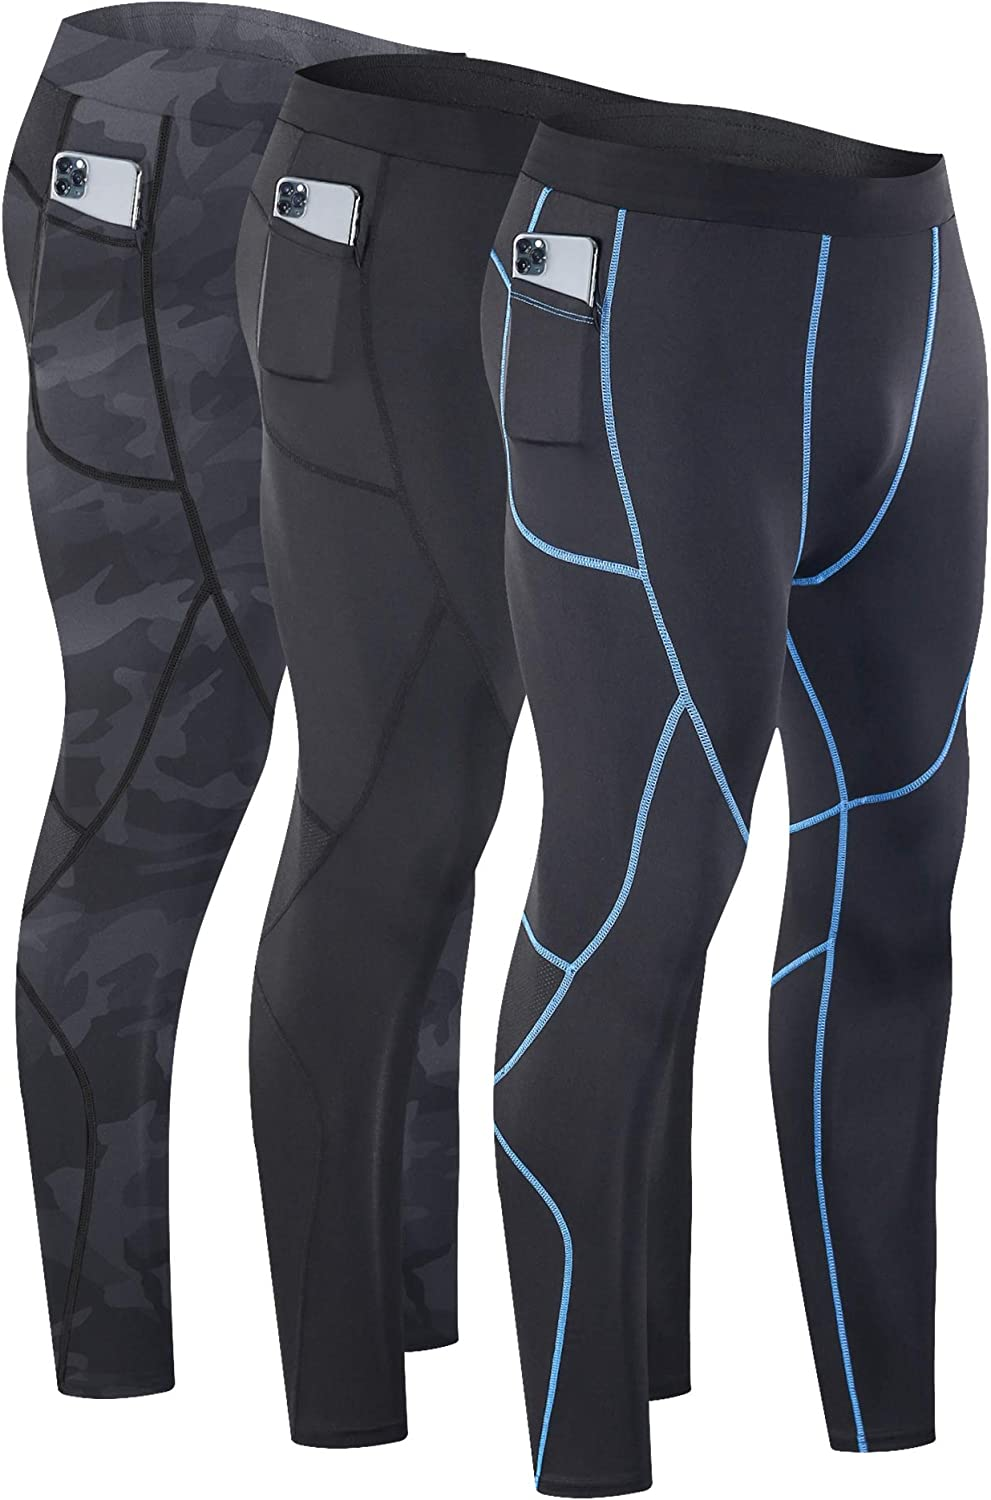 Mens Compression Leggings Dry Cool Sports Pants Base layer Running Cool Dry Slim